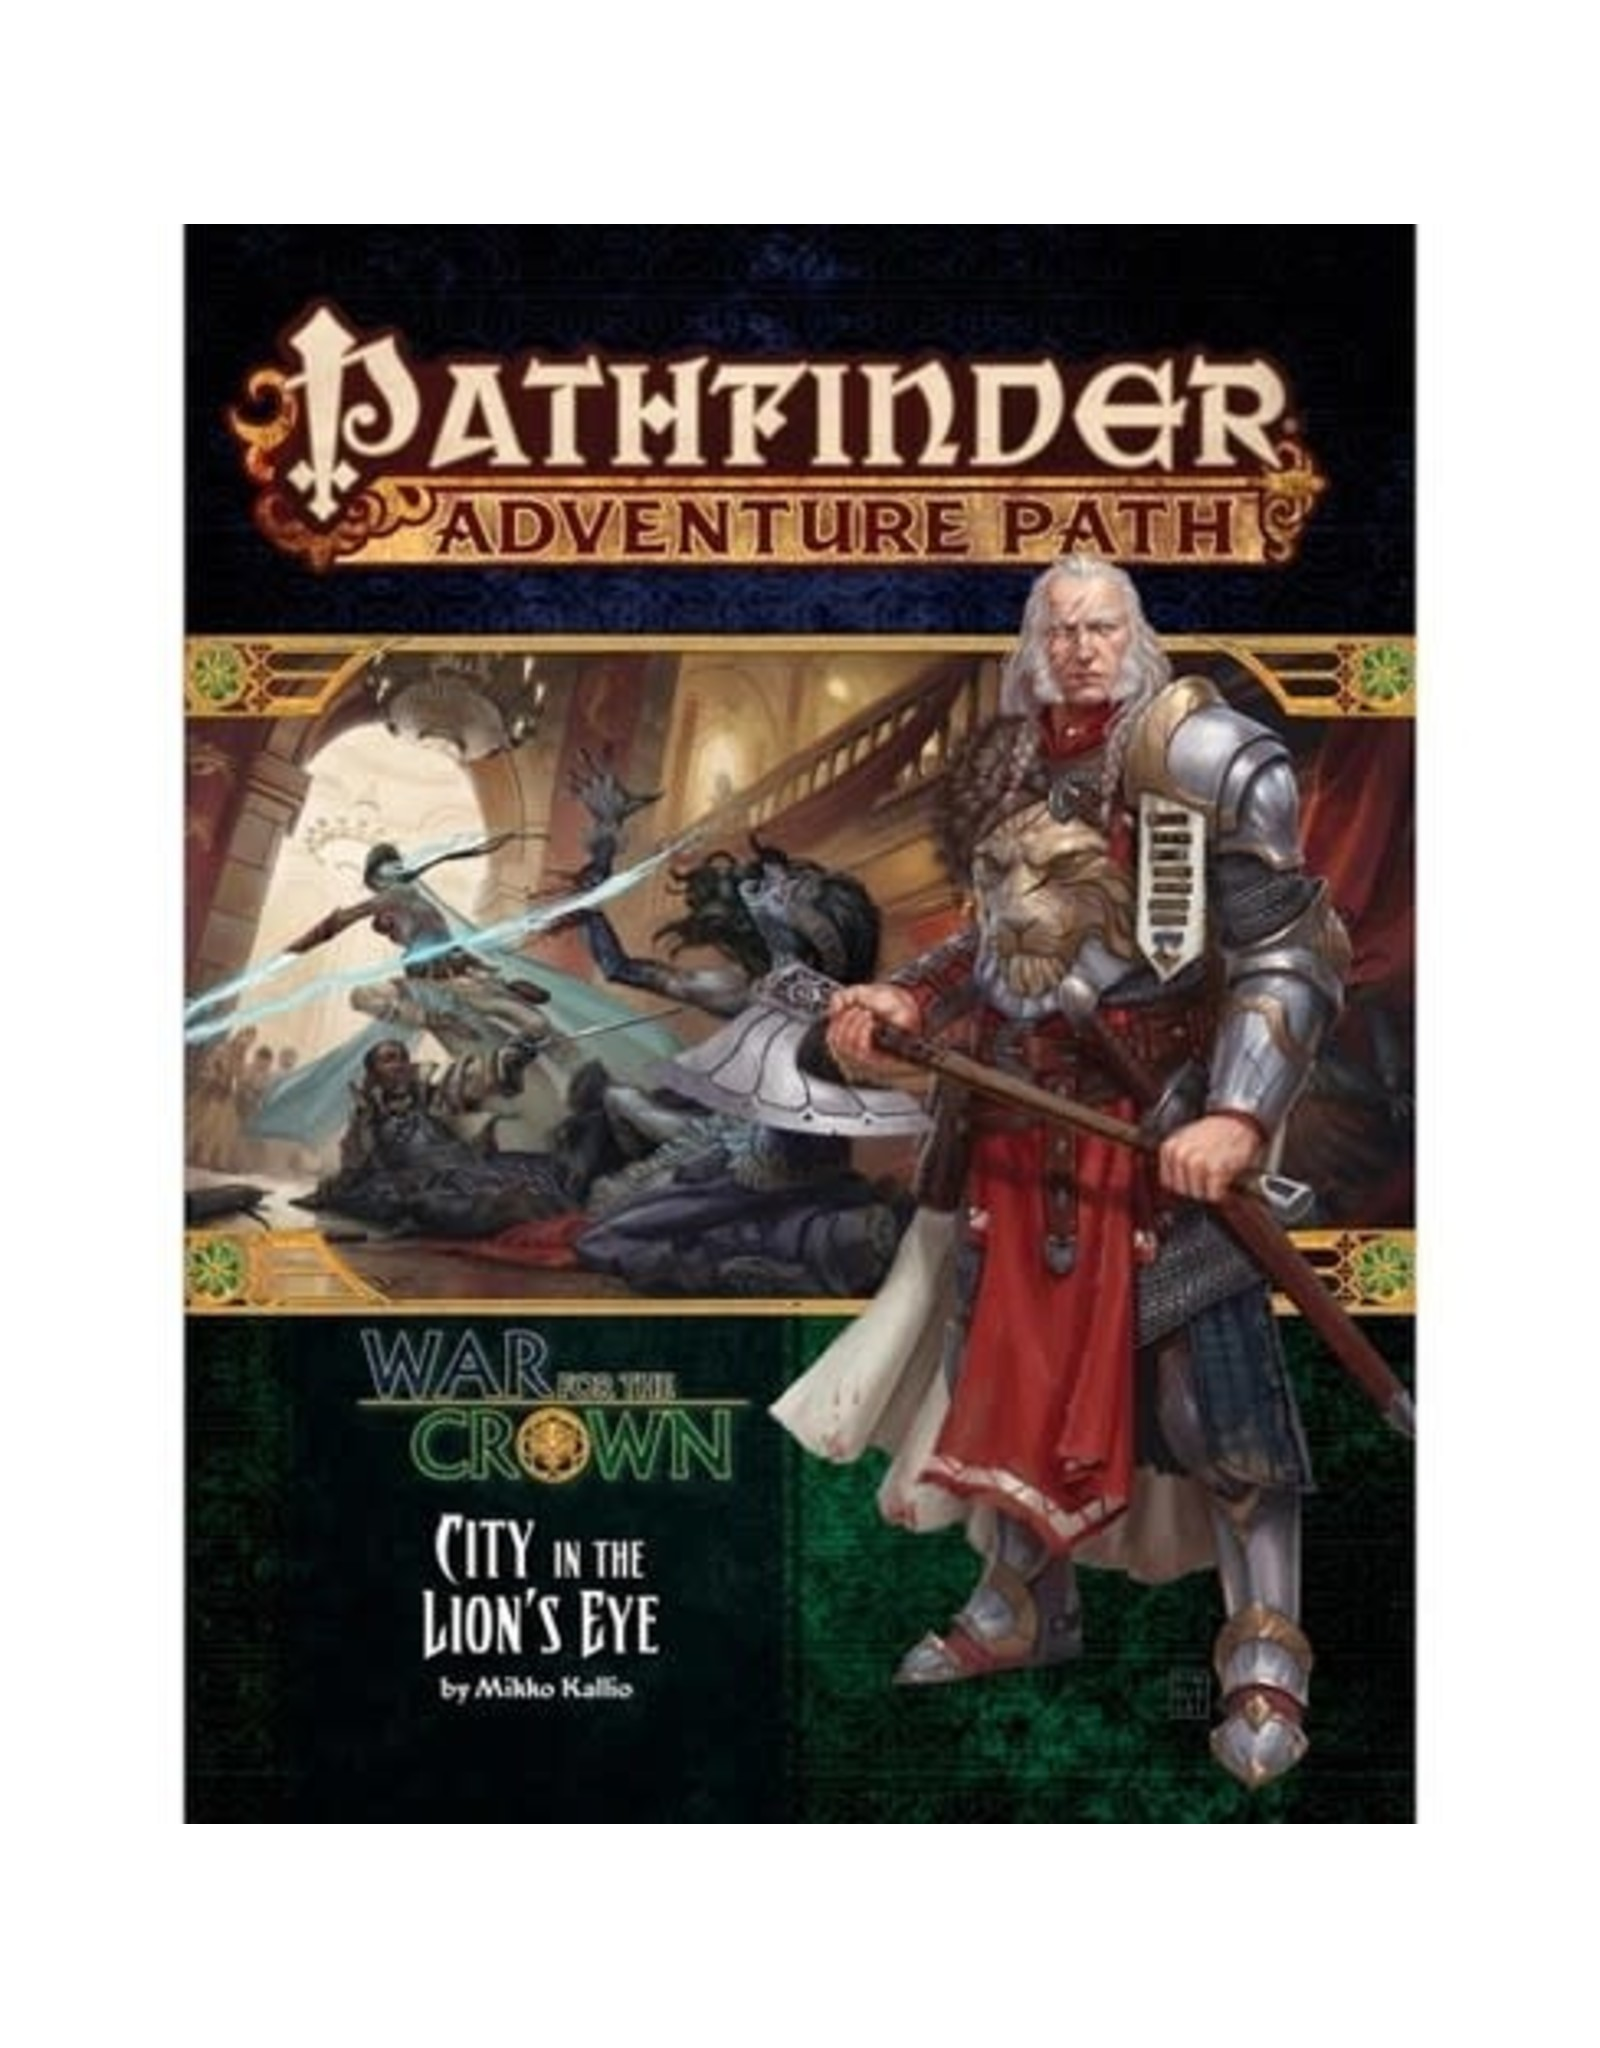 Pathfinder Adventure Path: War for the Crown #4 - CIty in the Lion's Eye